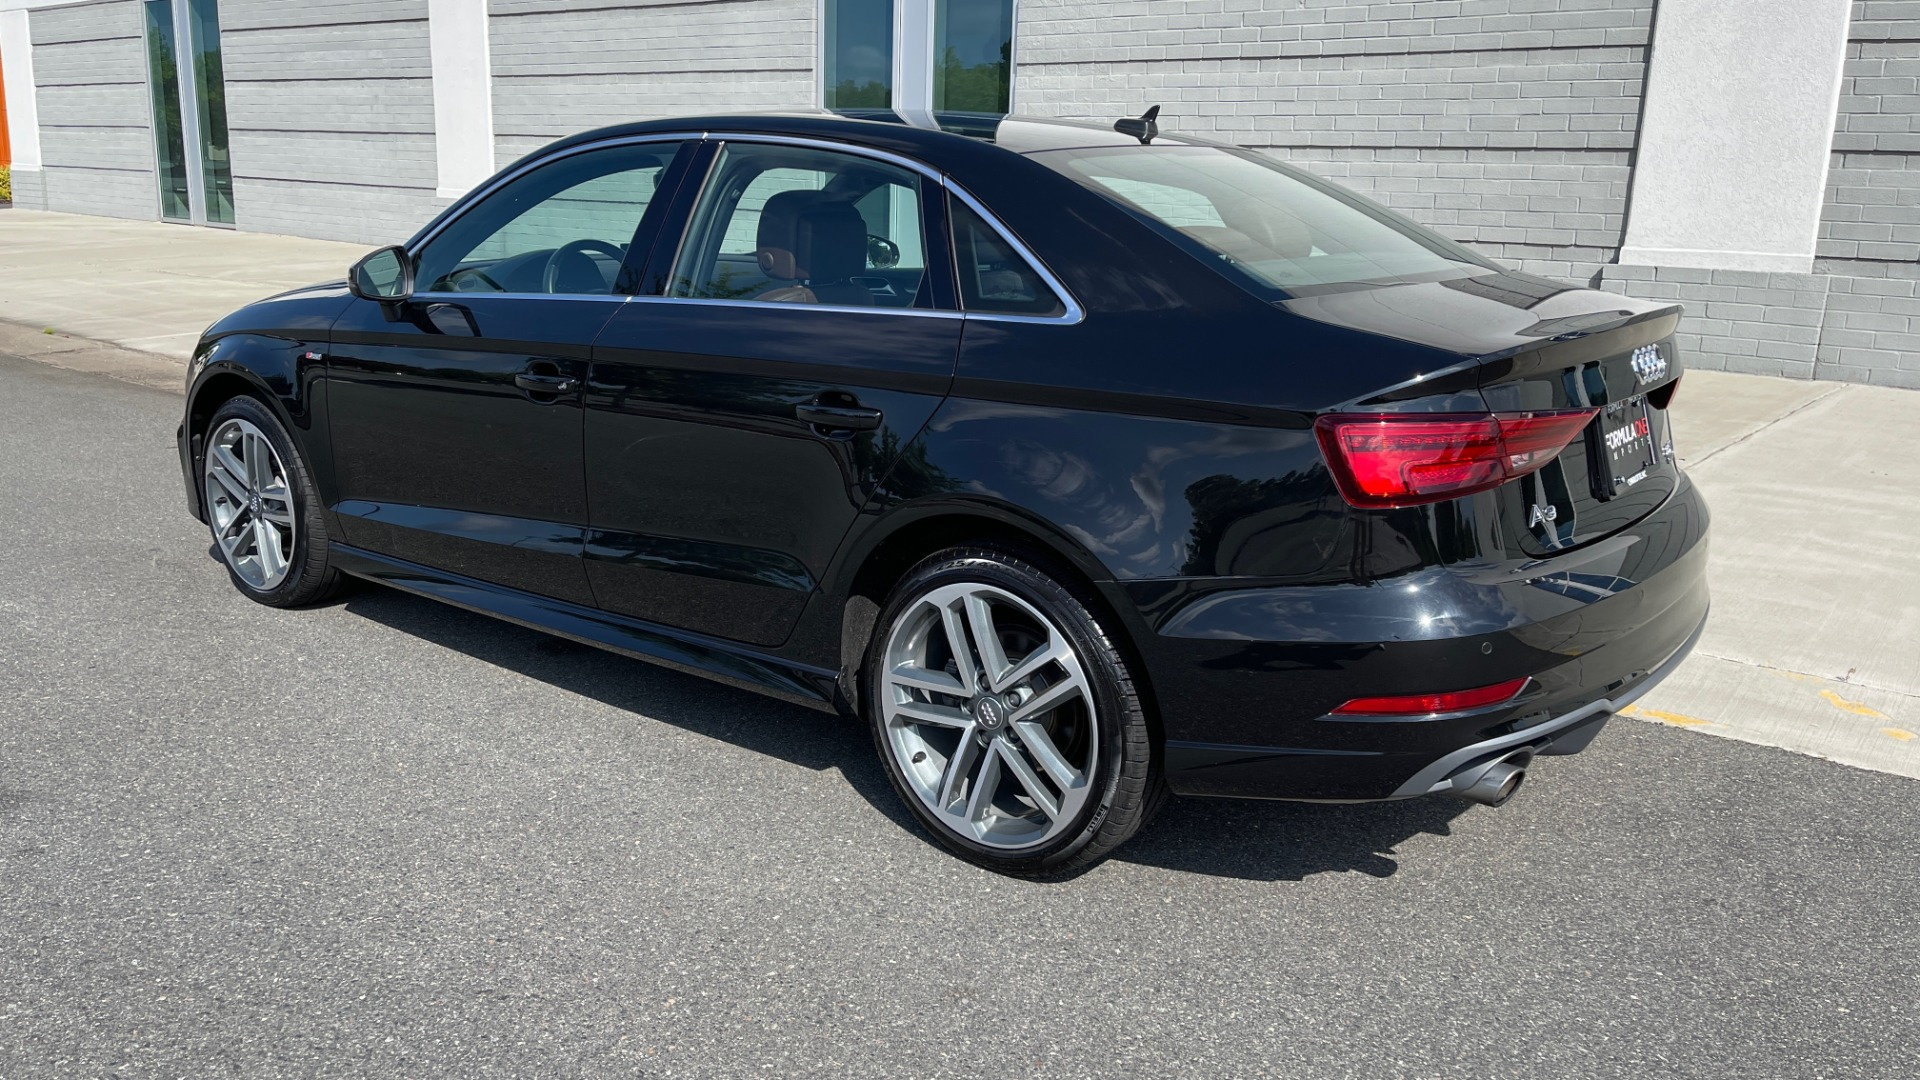 Used 2018 Audi A3 SEDAN PREMIUM PLUS / S-LINE / PANO-ROOF / PARK SYS / REARVIEW for sale $31,795 at Formula Imports in Charlotte NC 28227 5